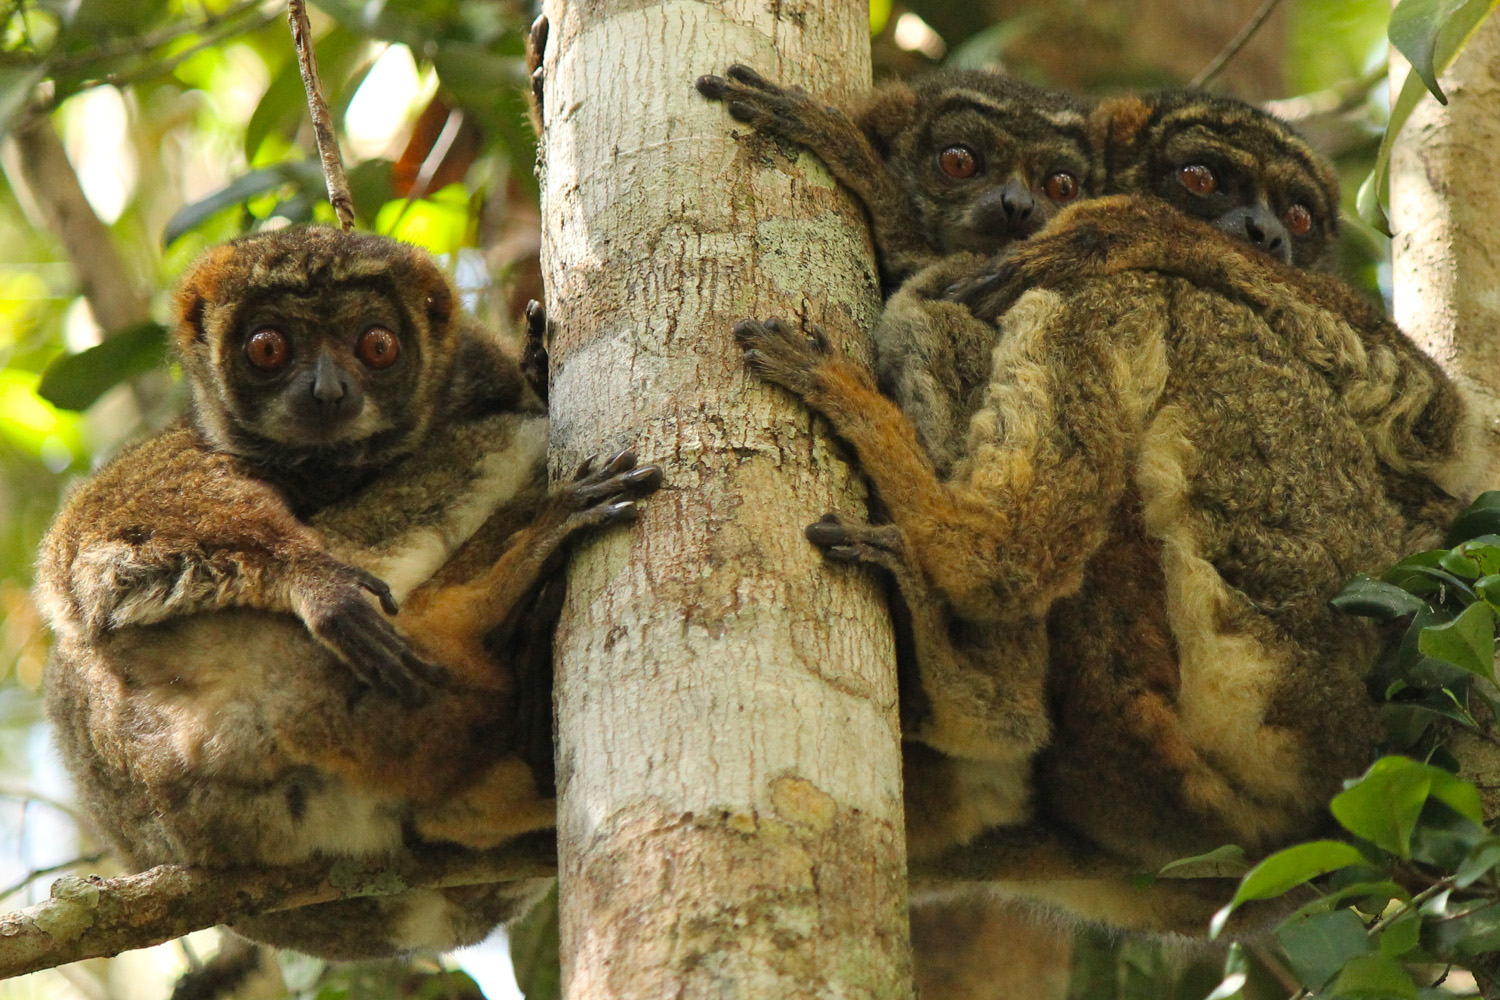 Three nocturnal eastern woolly lemurs sleeping in a tree in Andasibe National Park.